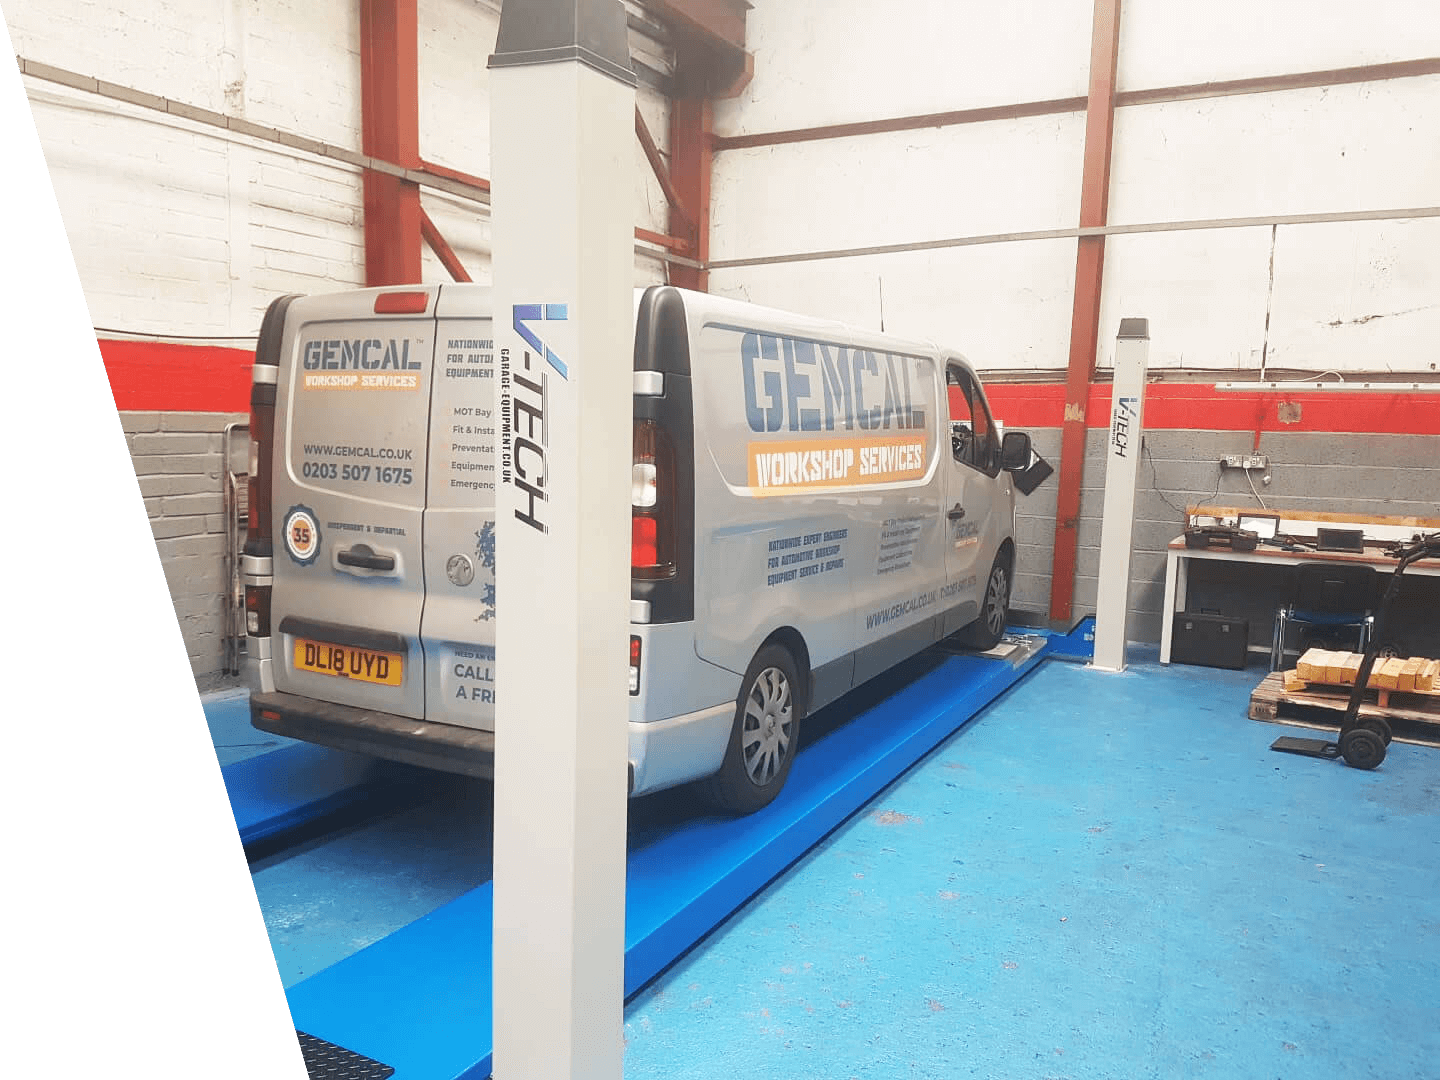 Gemcal with Post Lifts- Advanced Auto Care Installation